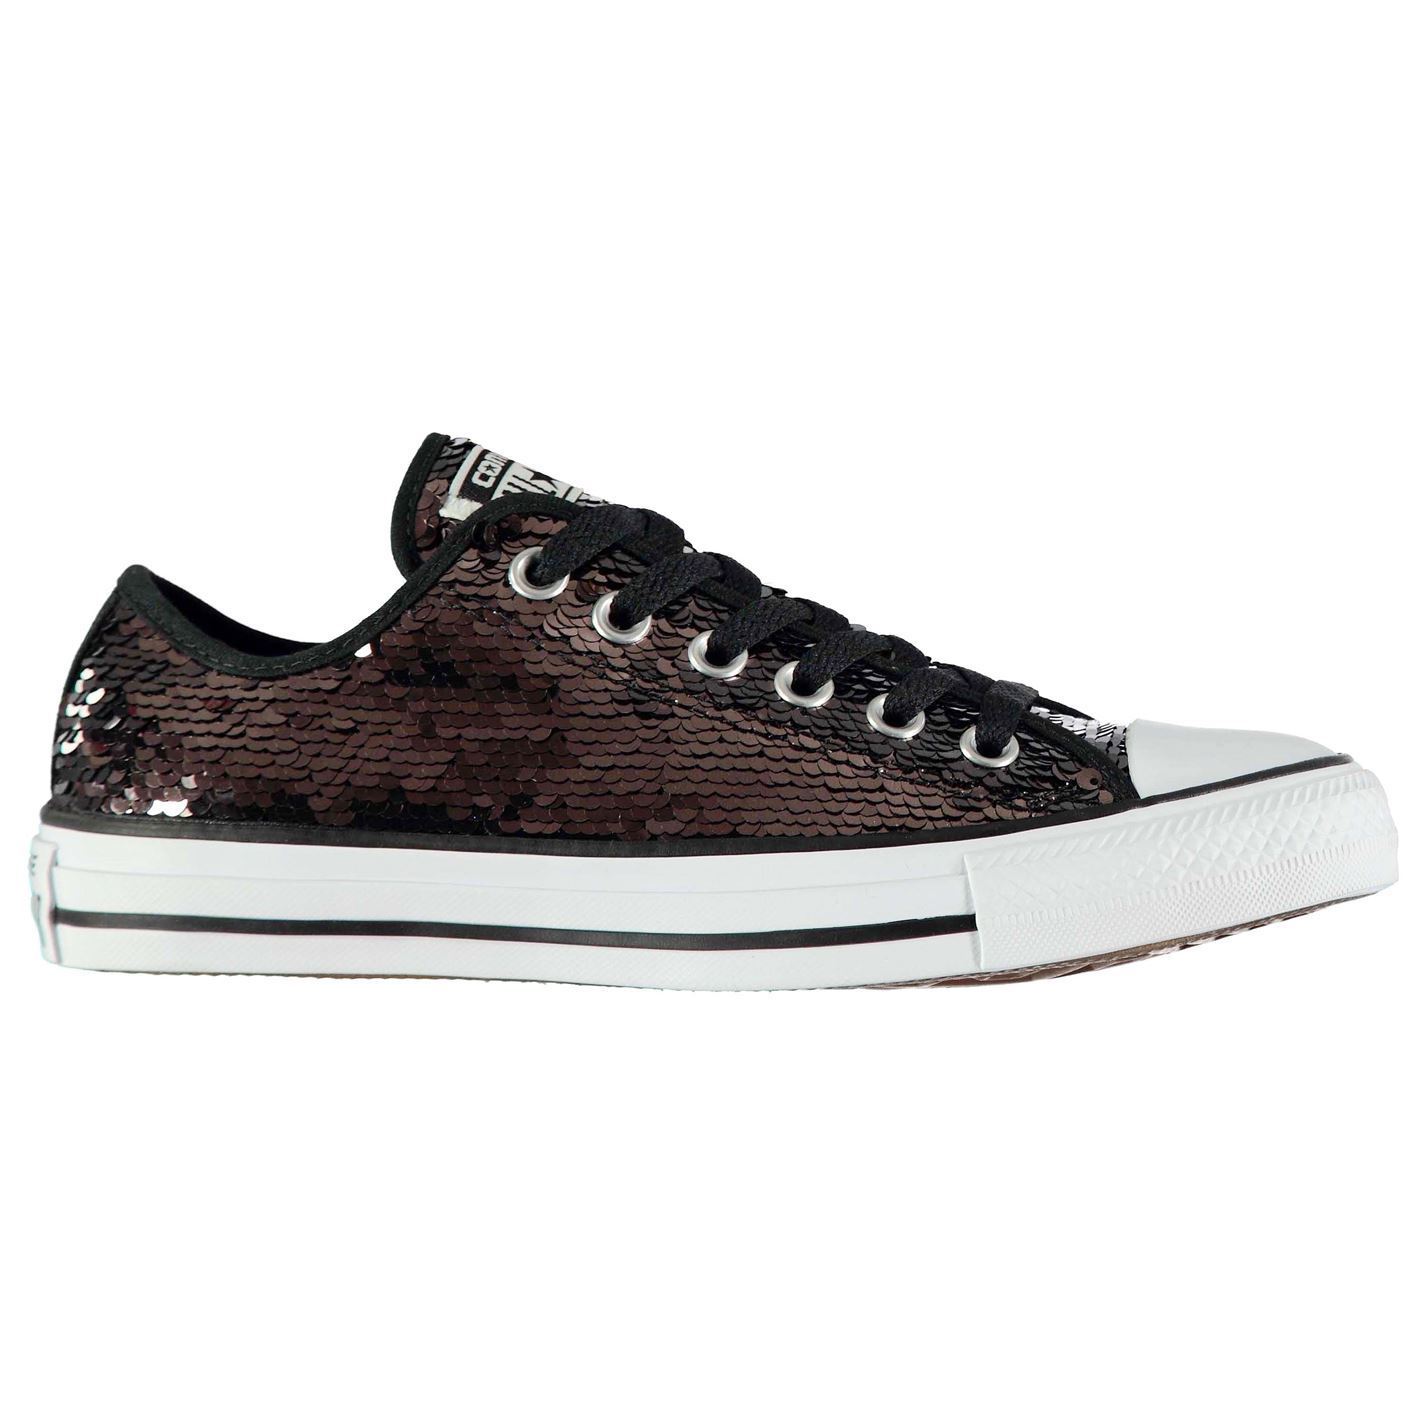 Women's Shoes Generous Converse All Star All Court Trainers Womens Athleisure Sneakers Shoes Footwear